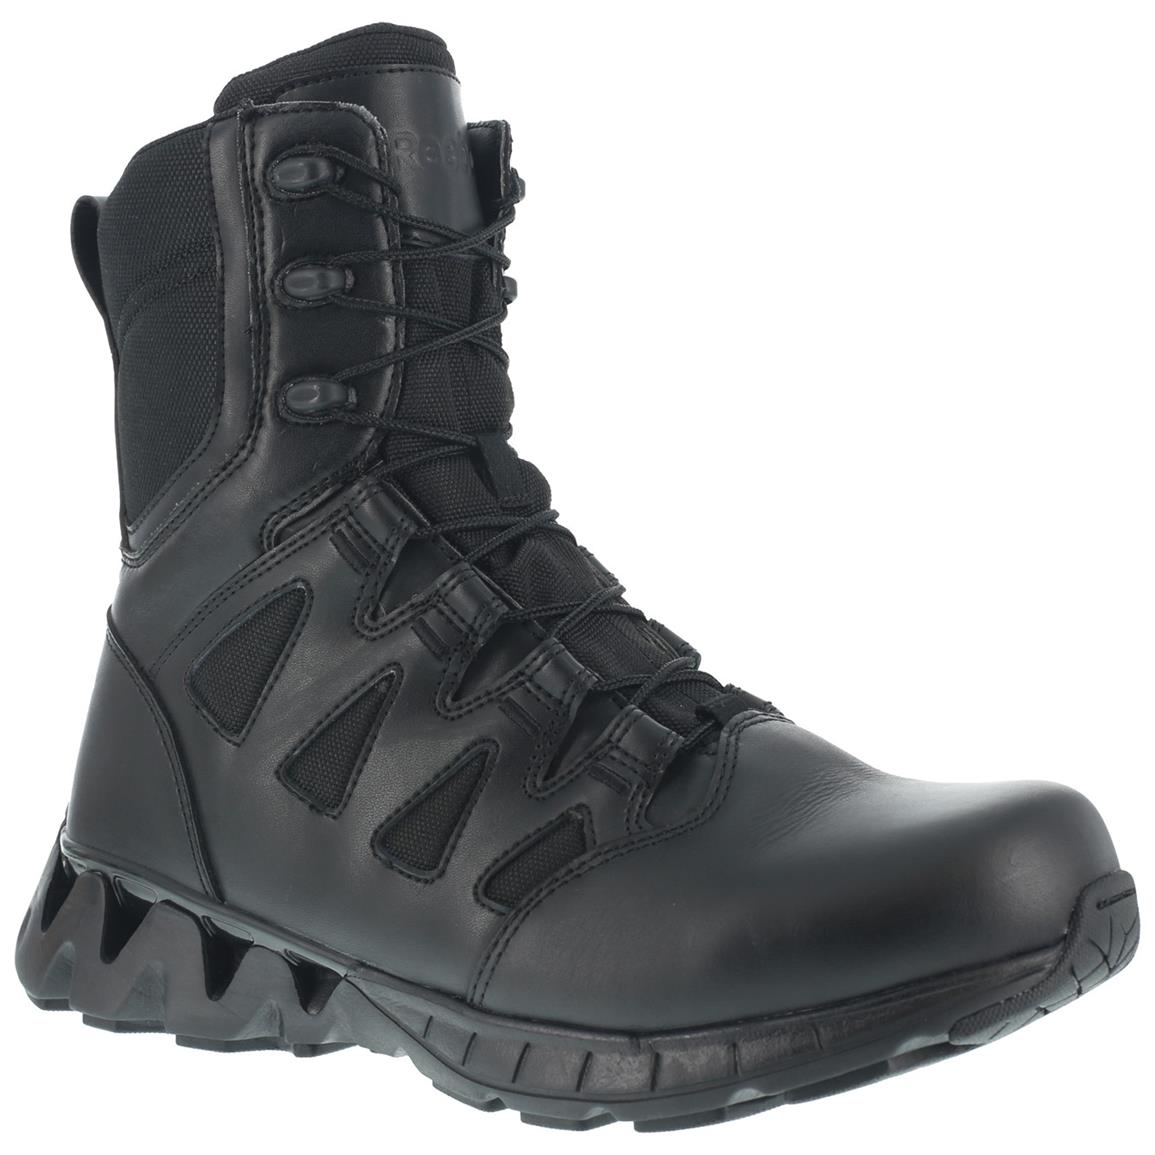 Reebok Duty ZigKick SZ Men's Tactical Boots, Side Zip, Black